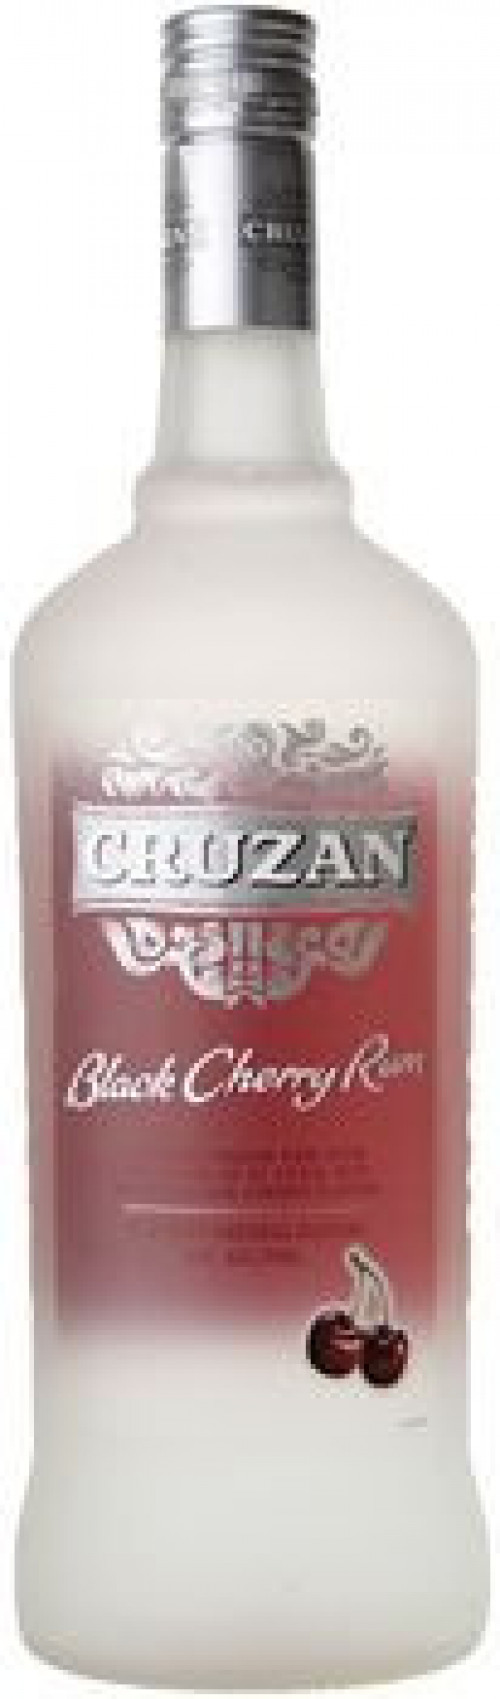 Cruzan Black Cherry Flavored Rum 1L